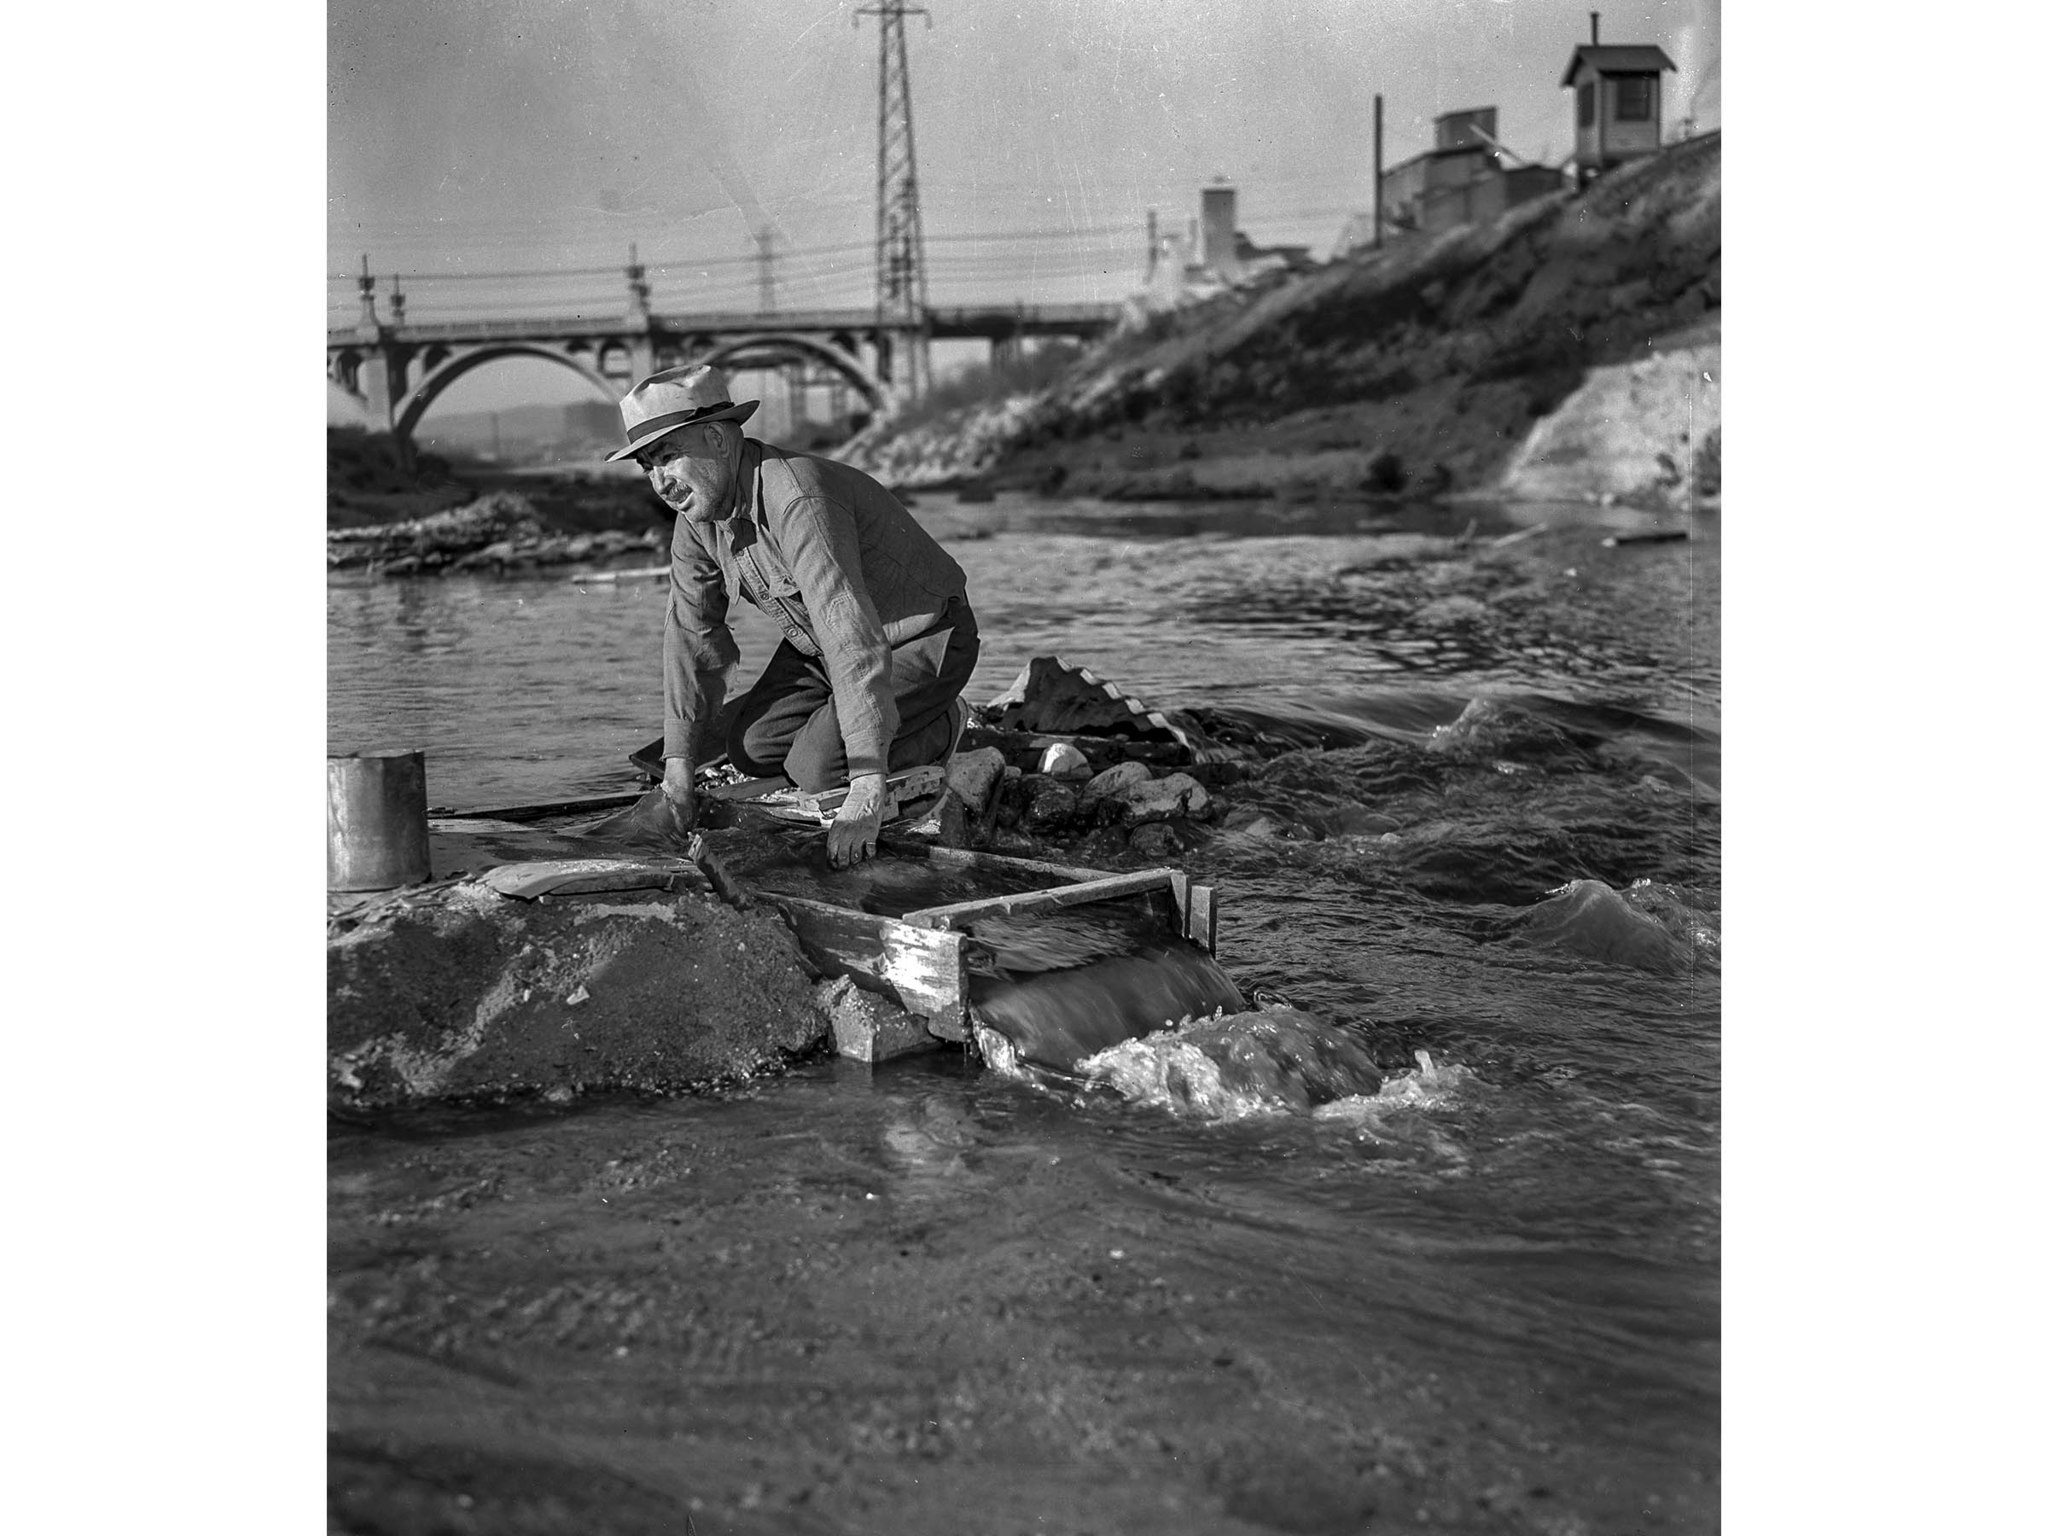 Dec. 11, 1938: Antonio Chacon uses a sluice box to look for gold in the Los Angeles River. This pho